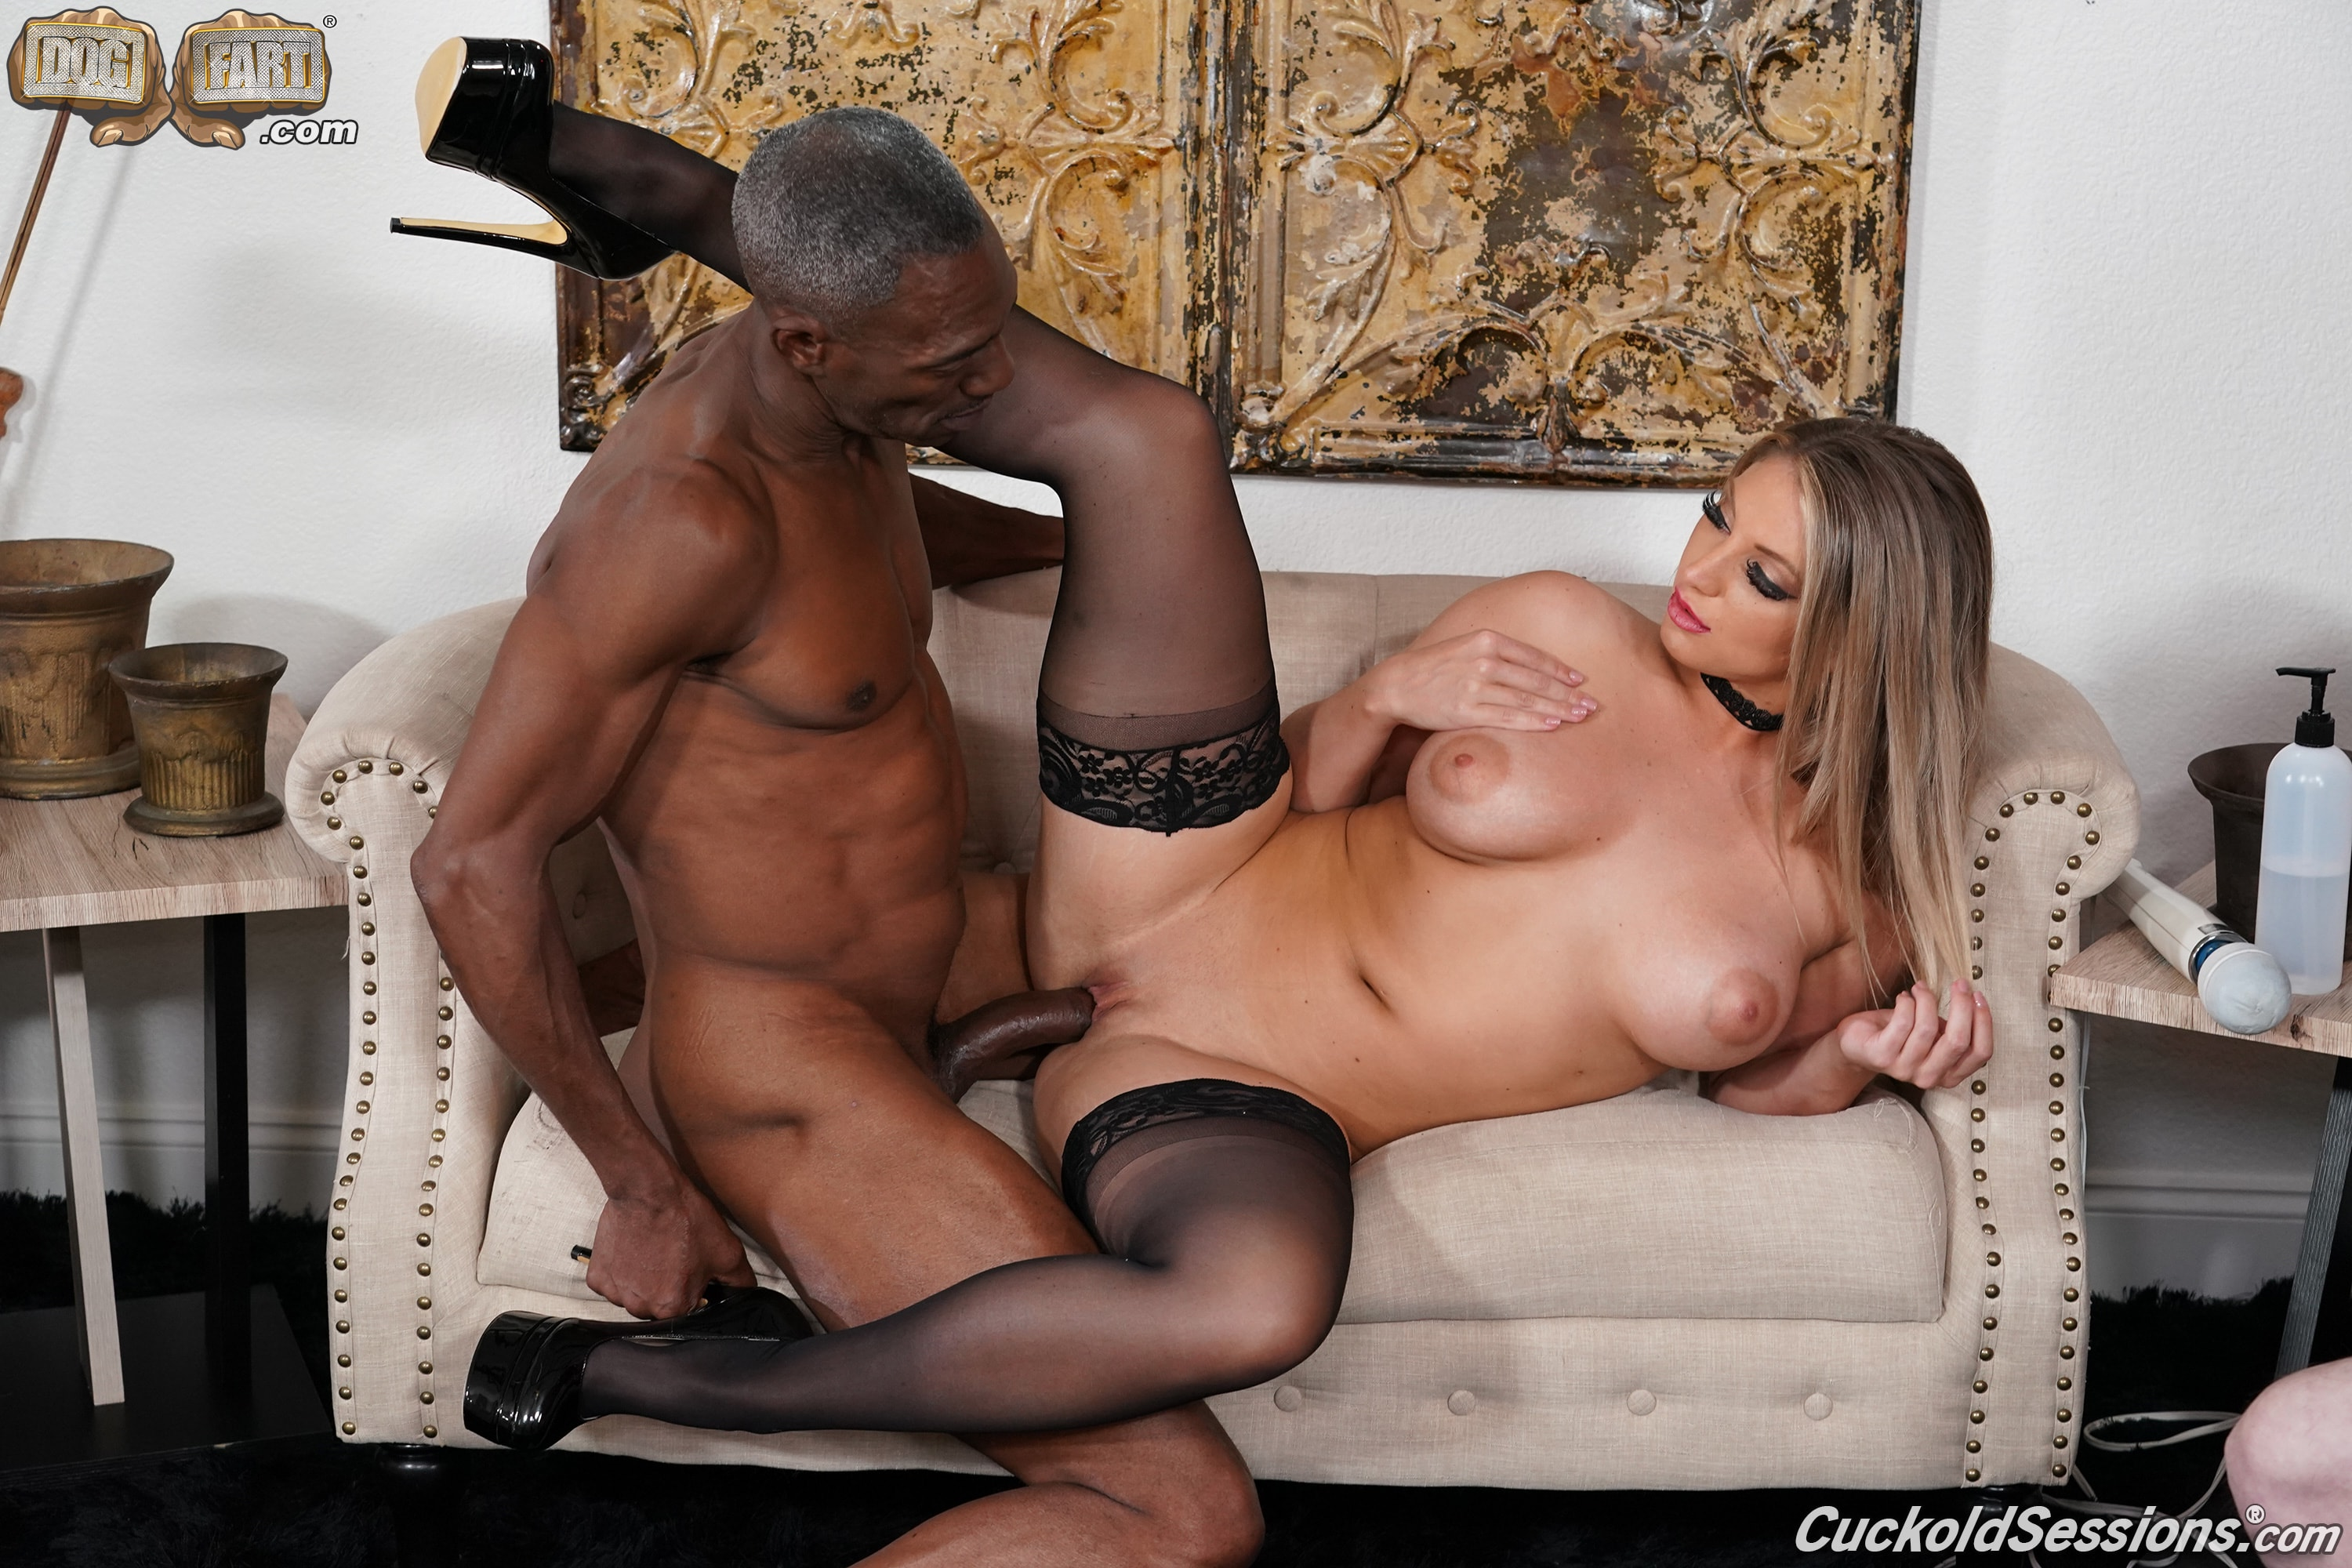 Dogfart '- Cuckold Sessions - Scene 2' starring Kayley Gunner (Photo 19)